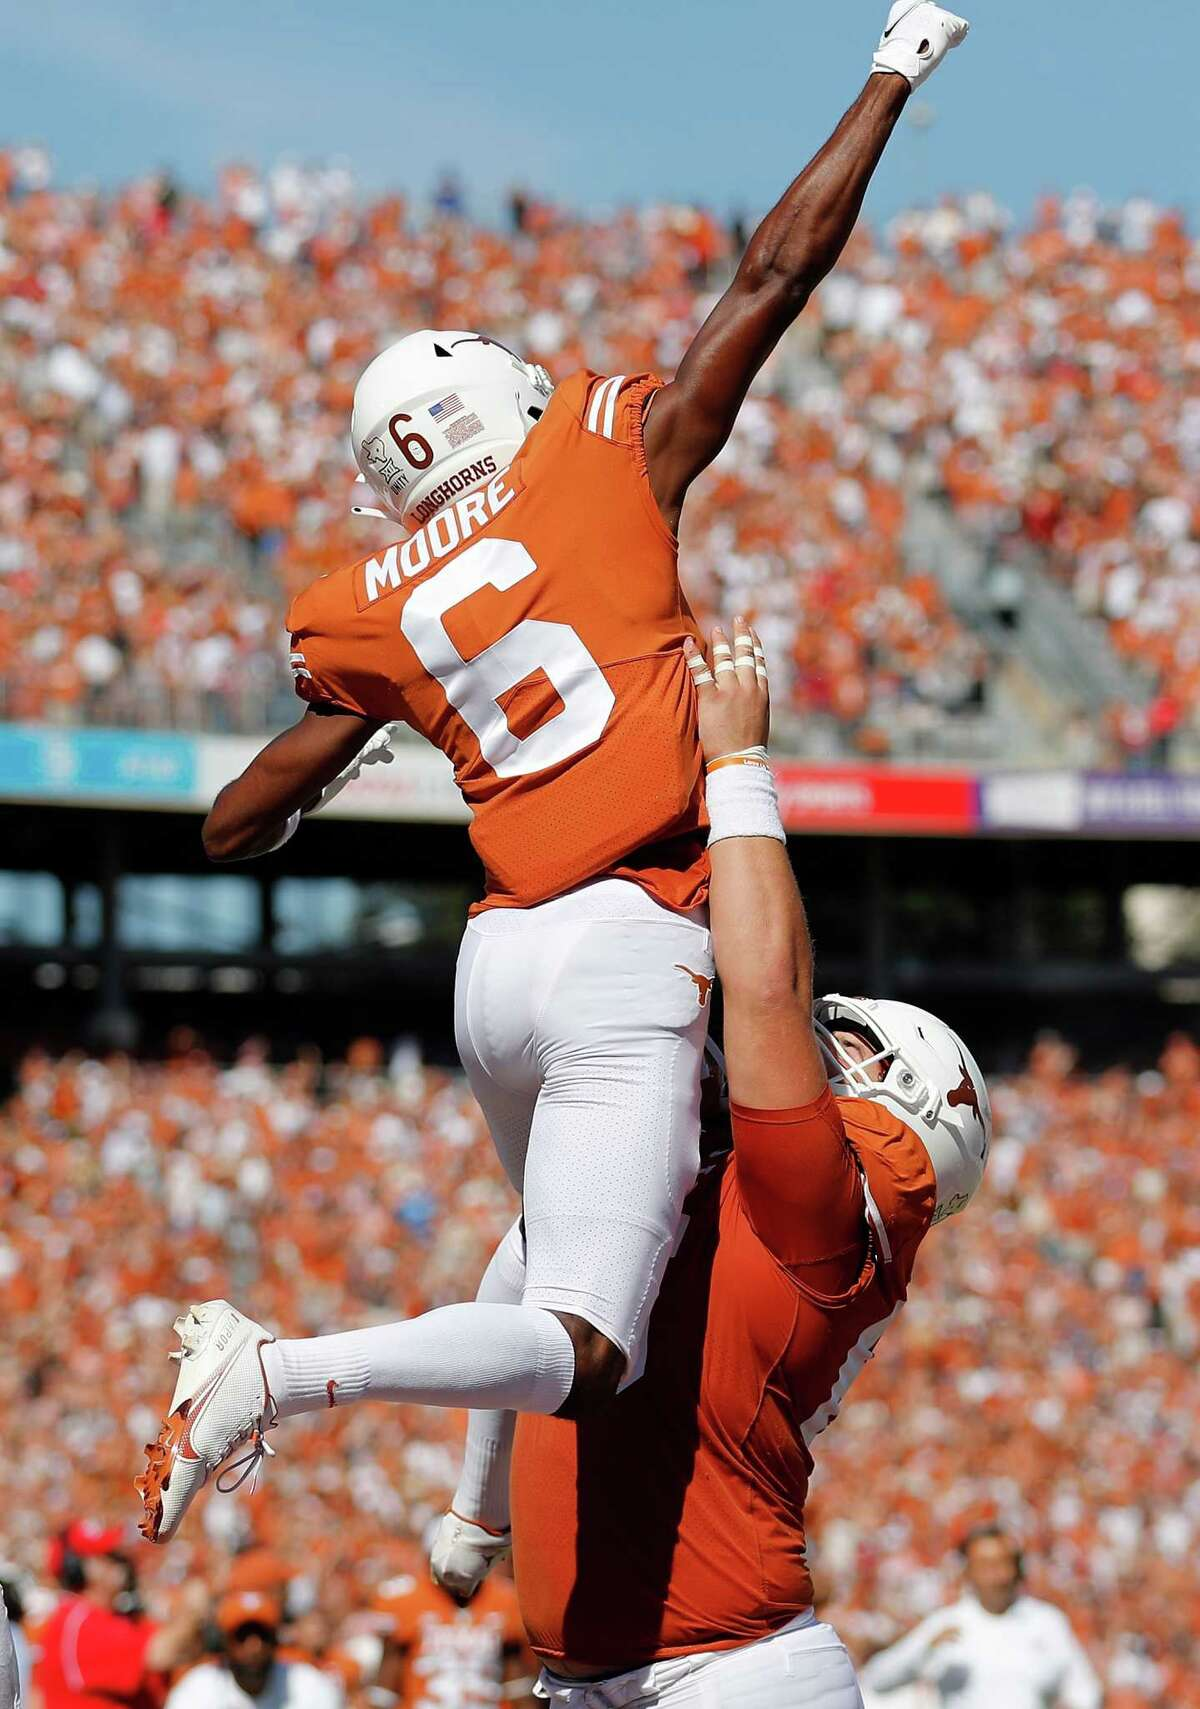 DALLAS, TEXAS - OCTOBER 09: Jake Majors #65 of the Texas Longhorns celebrates with Joshua Moore #6 after a touchdown reception in the first quarter against the Oklahoma Sooners during the 2021 AT&T Red River Showdown at Cotton Bowl on October 09, 2021 in Dallas, Texas.